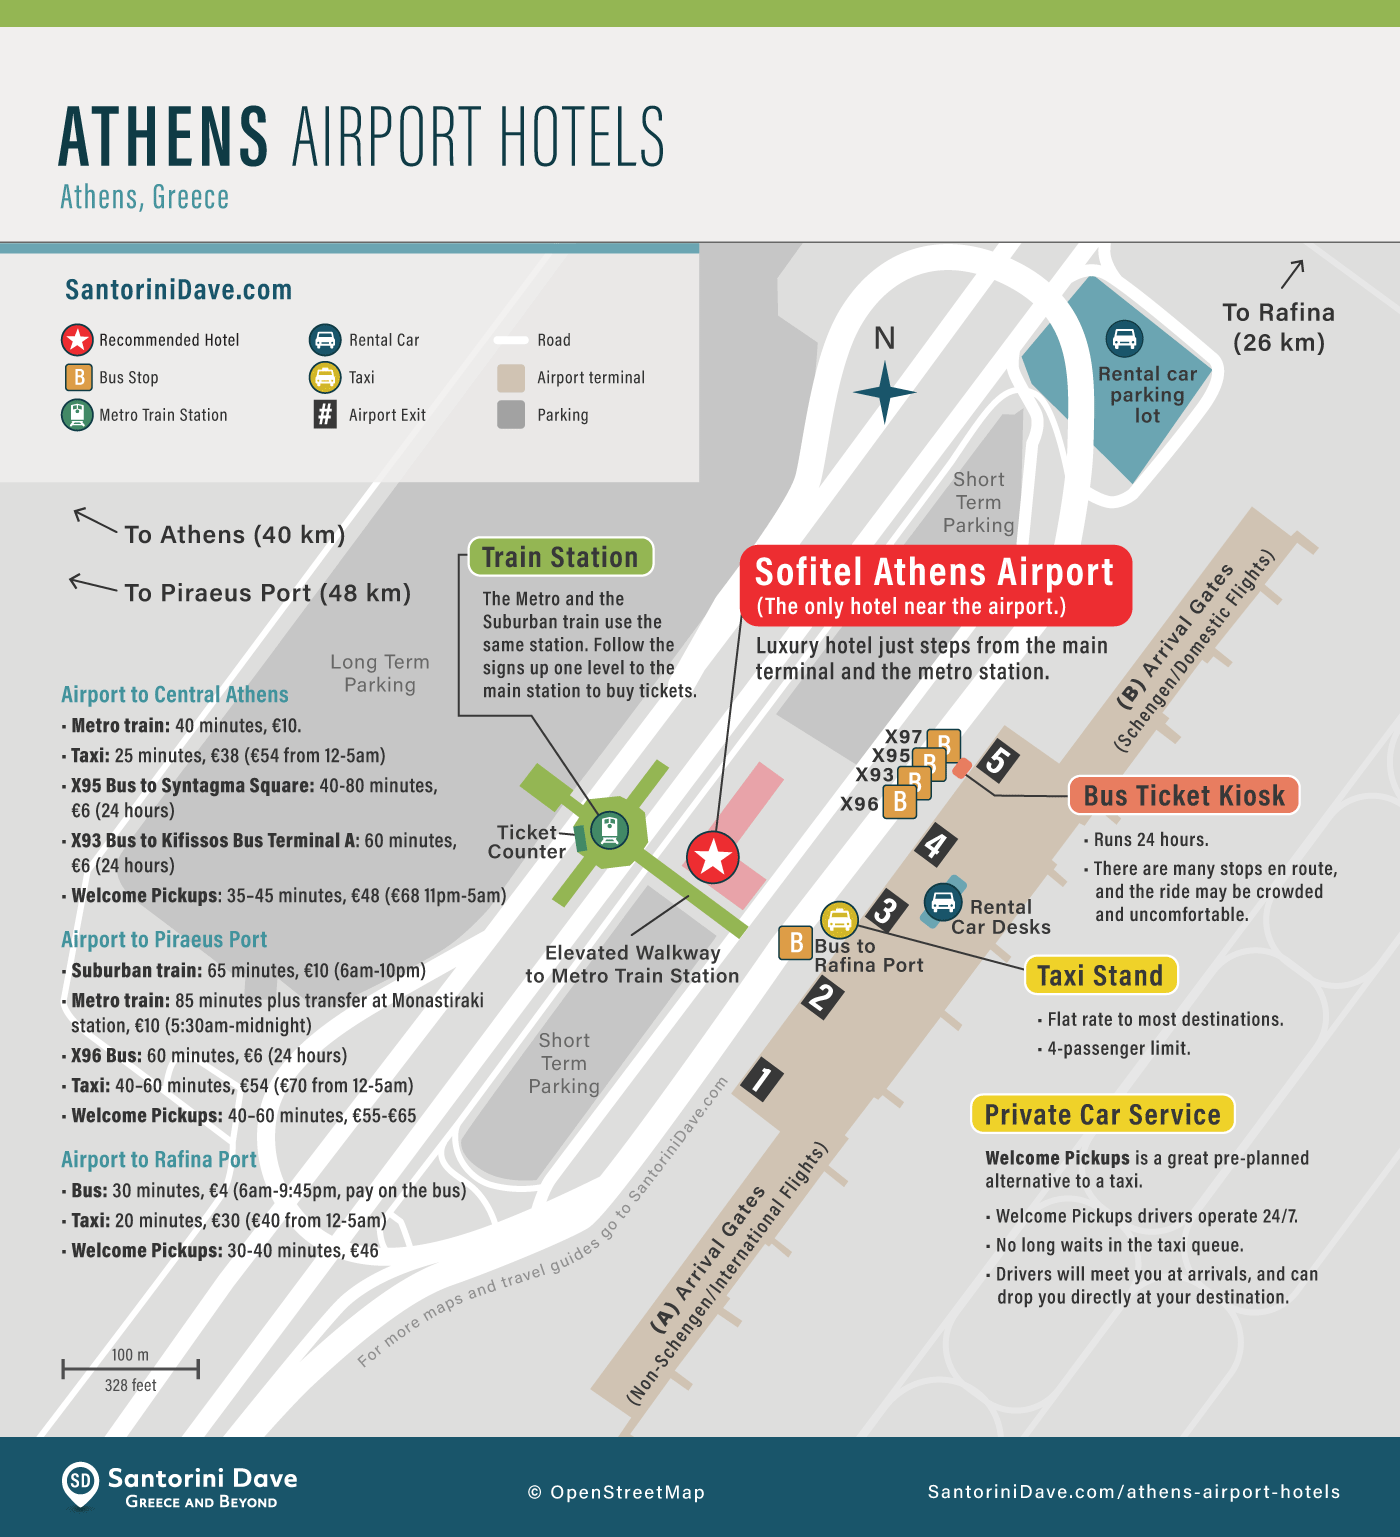 Map of Athens Airport Hotels.